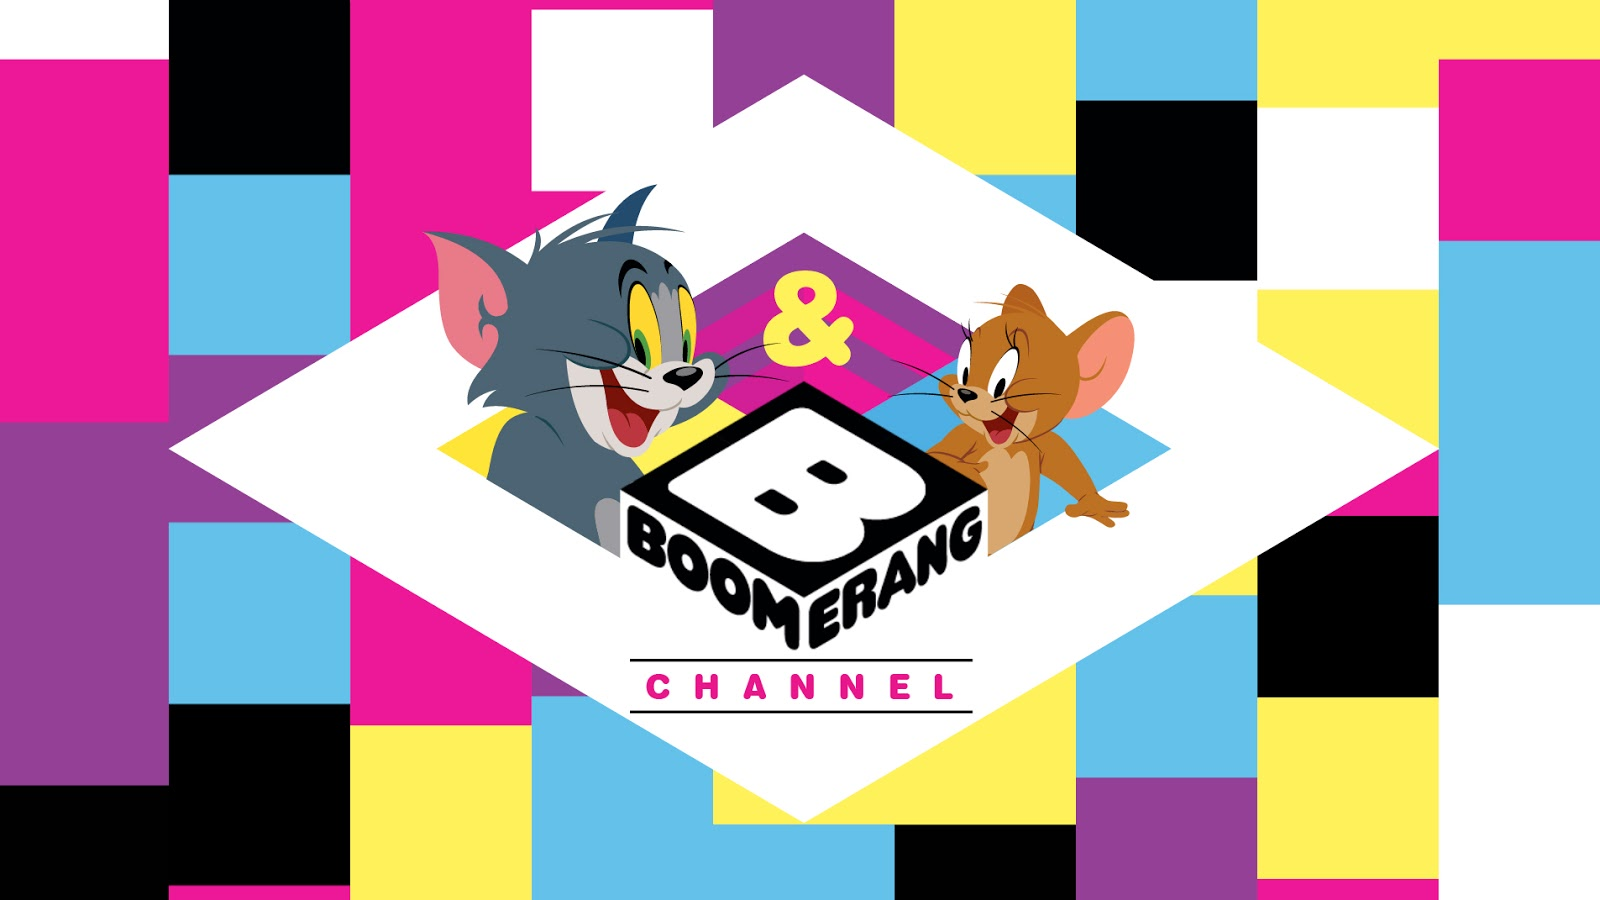 The Tom & Jerry Channel